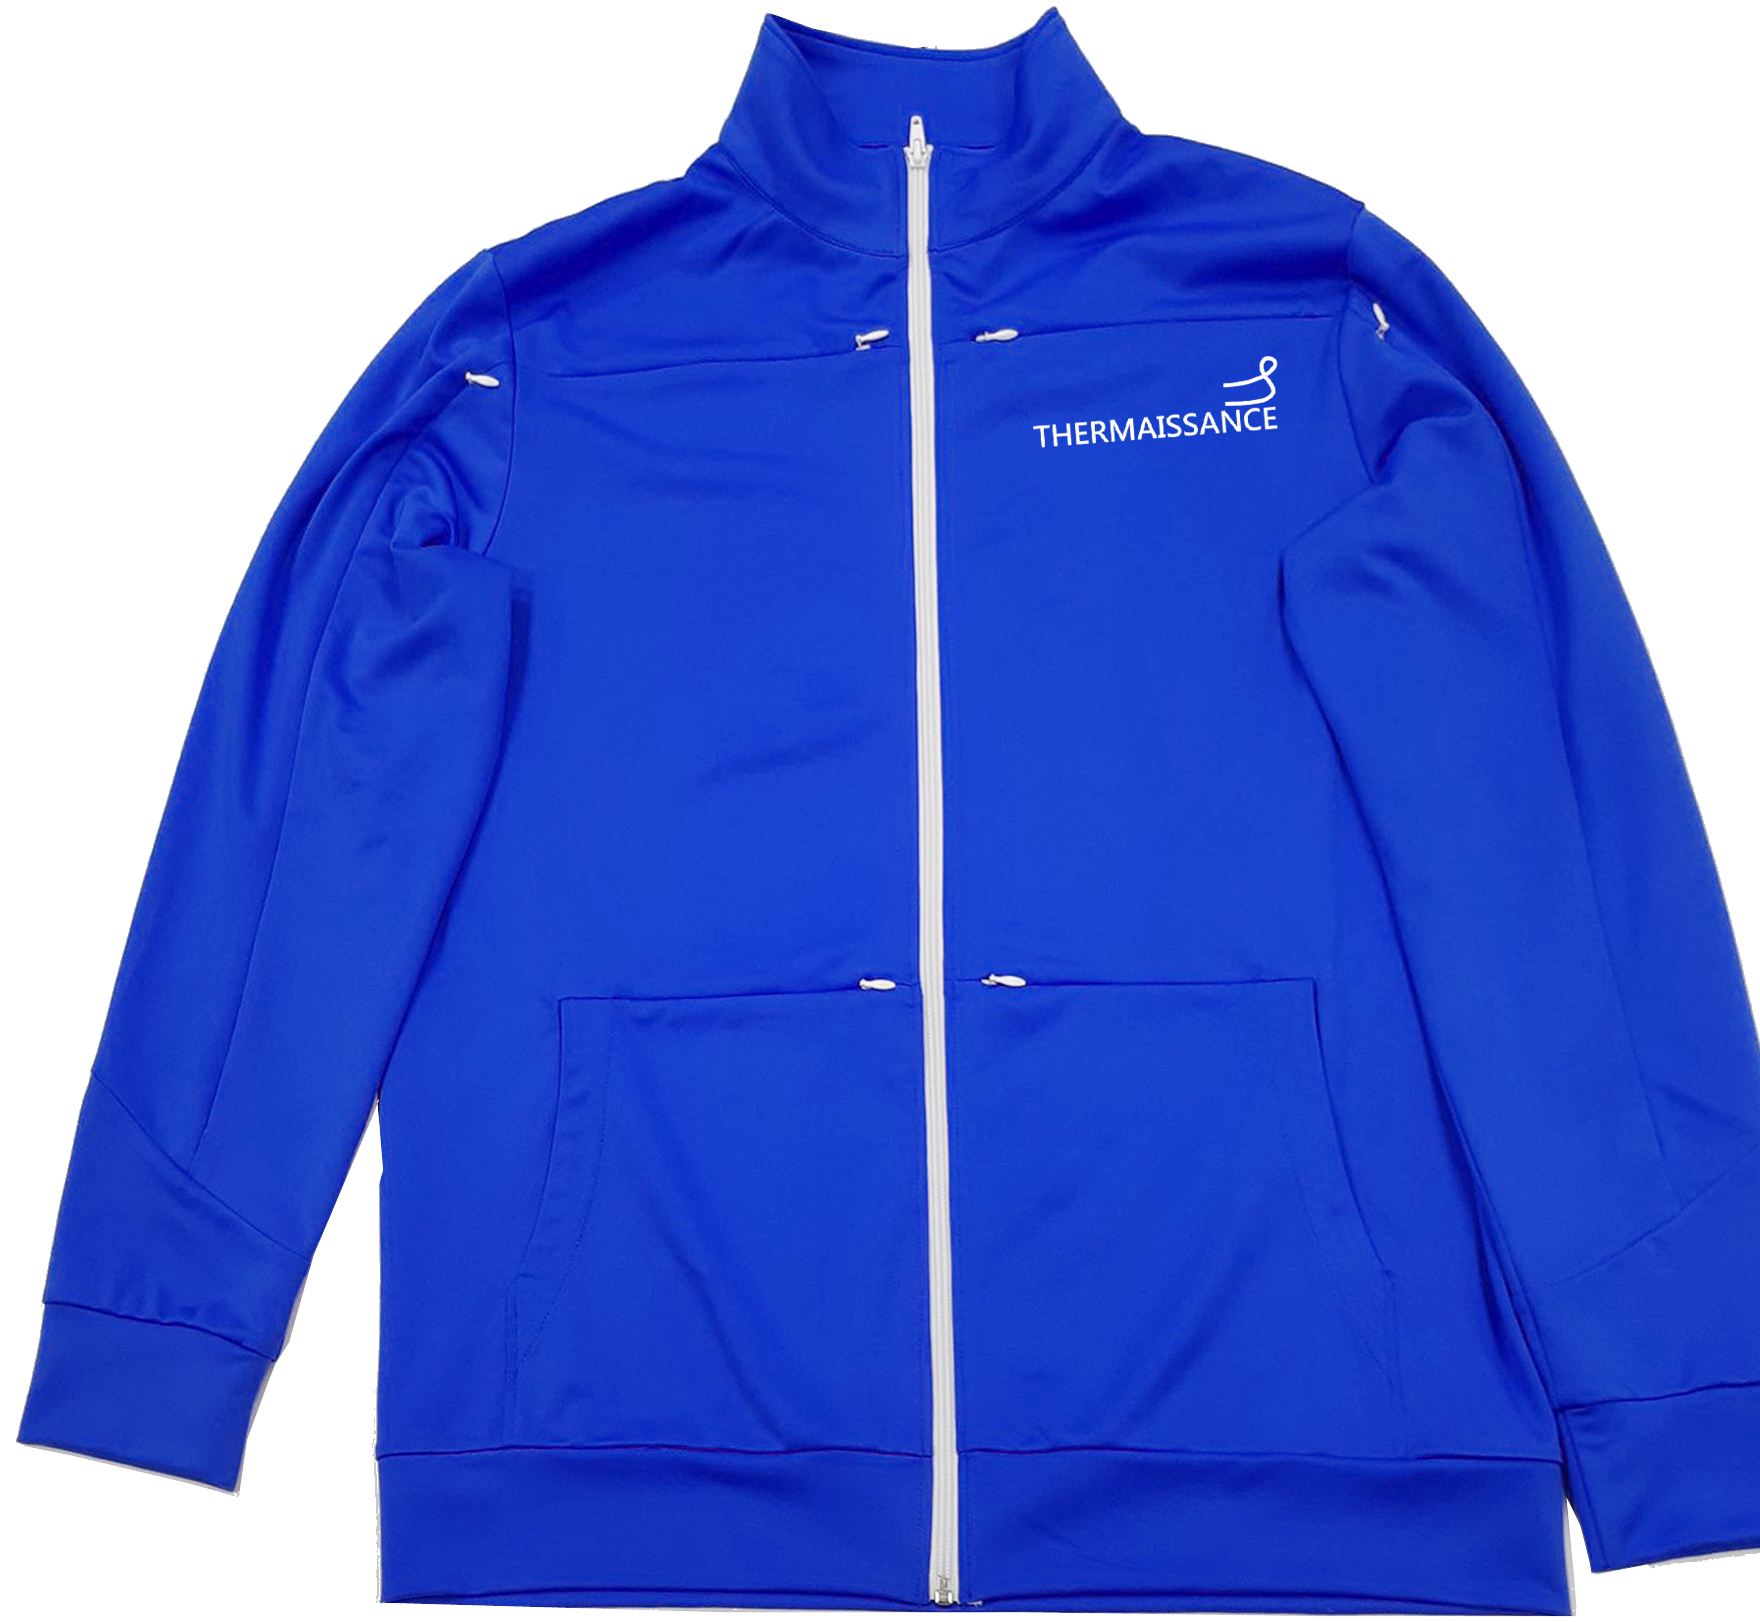 Dialysis Patient Clothing